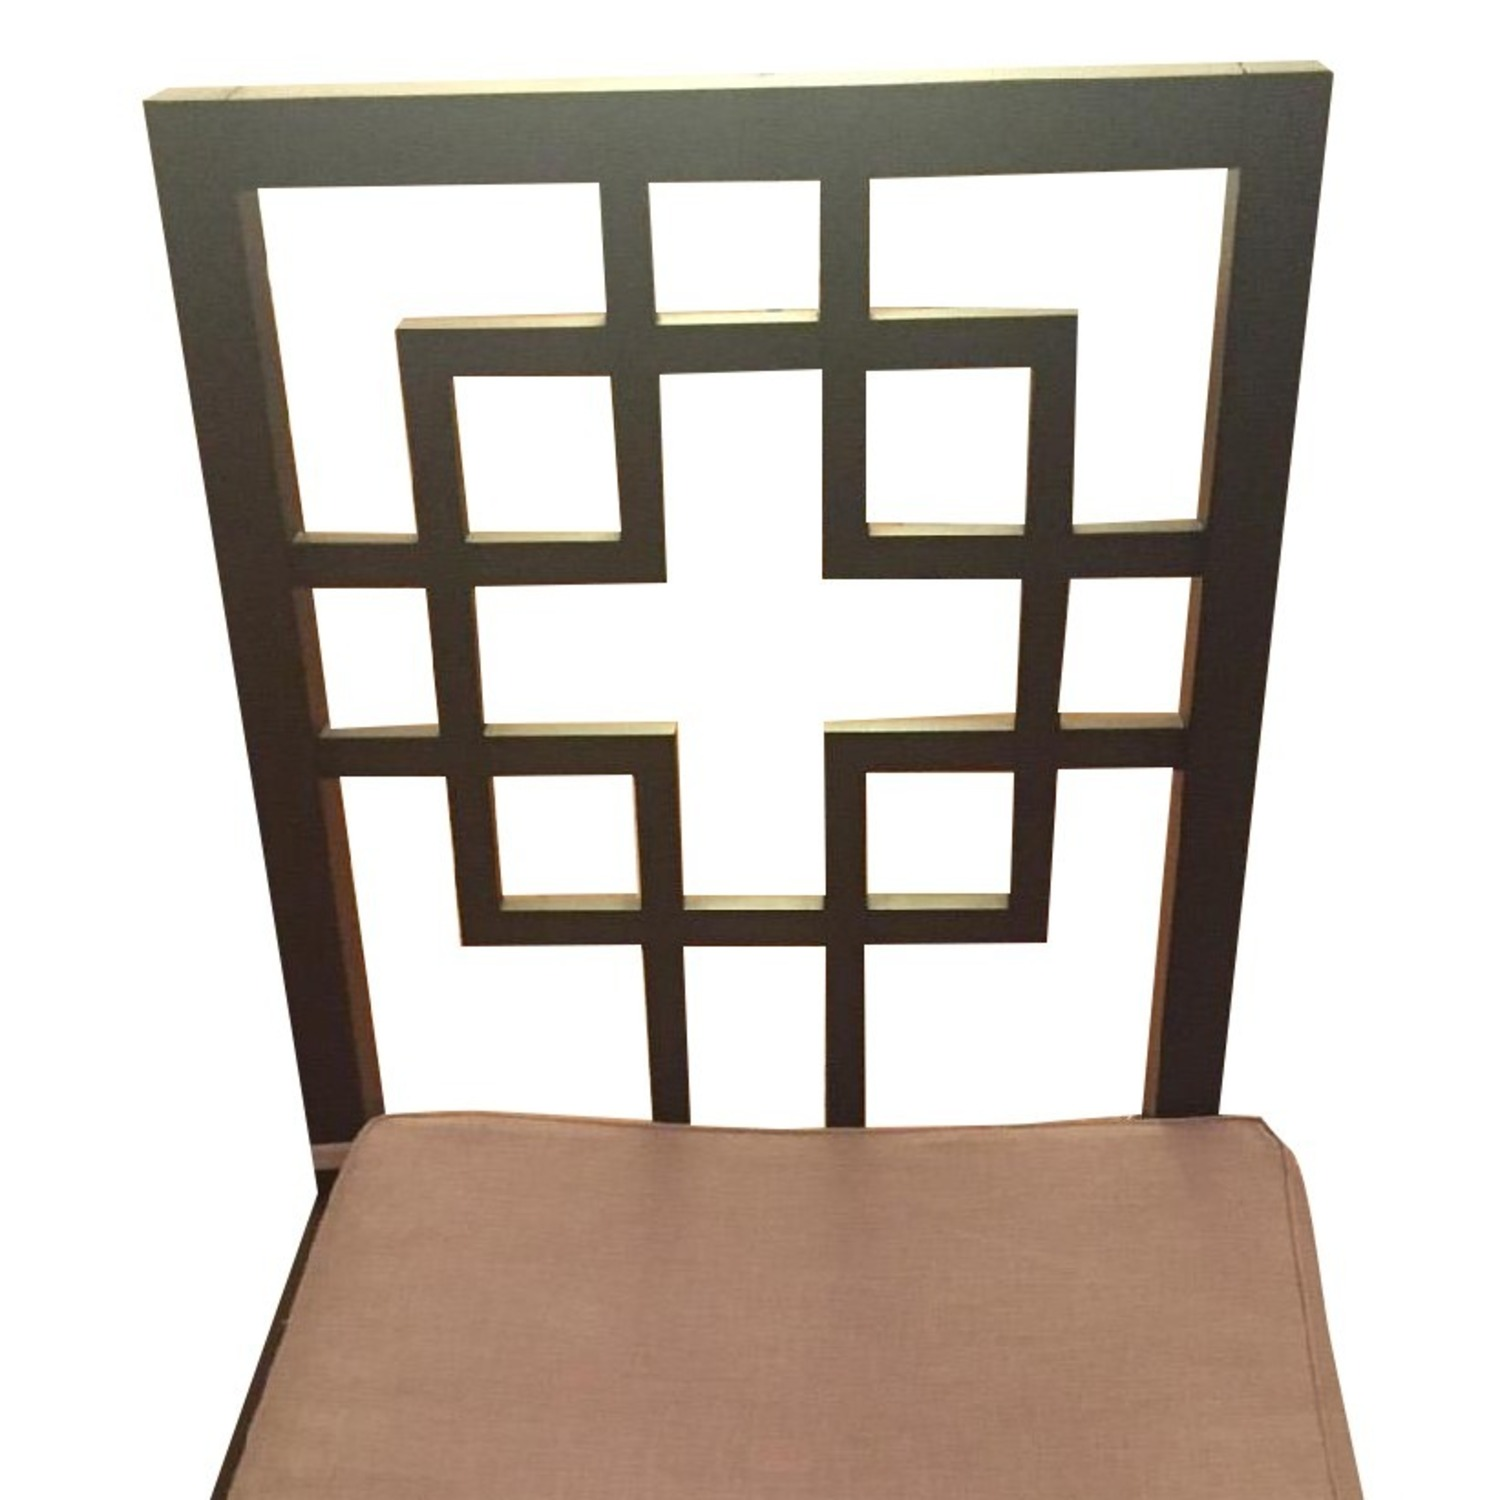 West Elm Dining Table w/ 4 Chairs - image-7